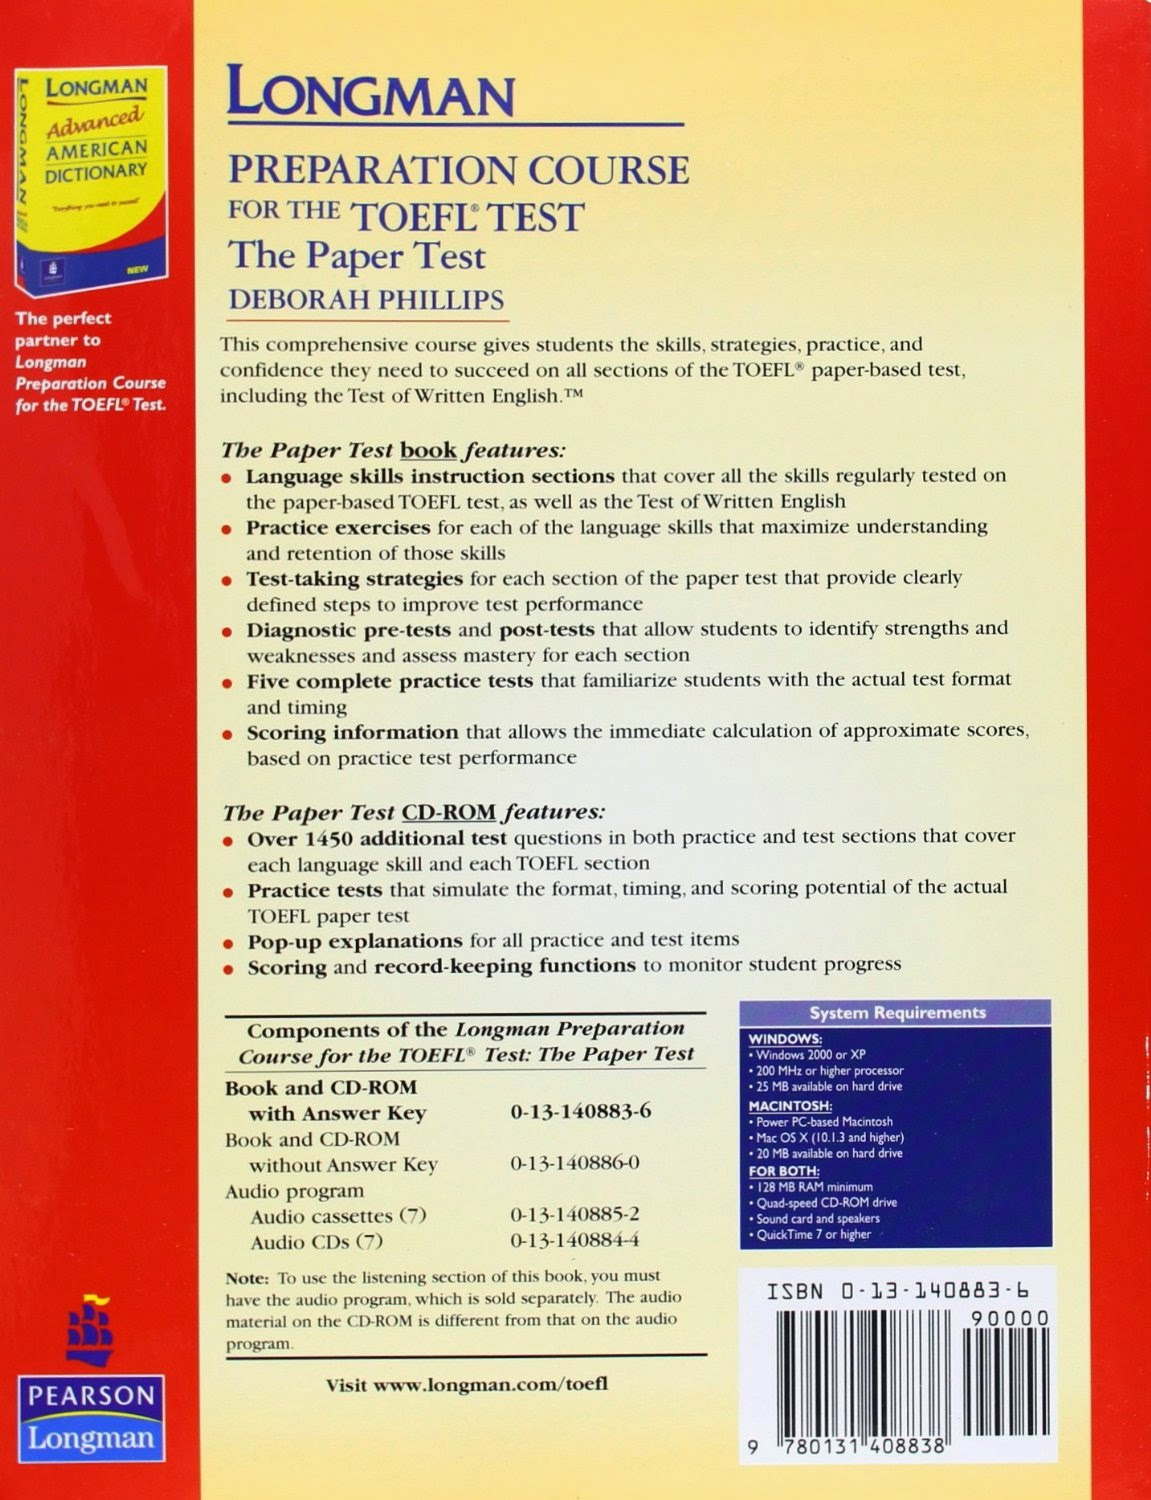 Free Download Longman Preparation Course for the TOEFL Test: The Paper Test